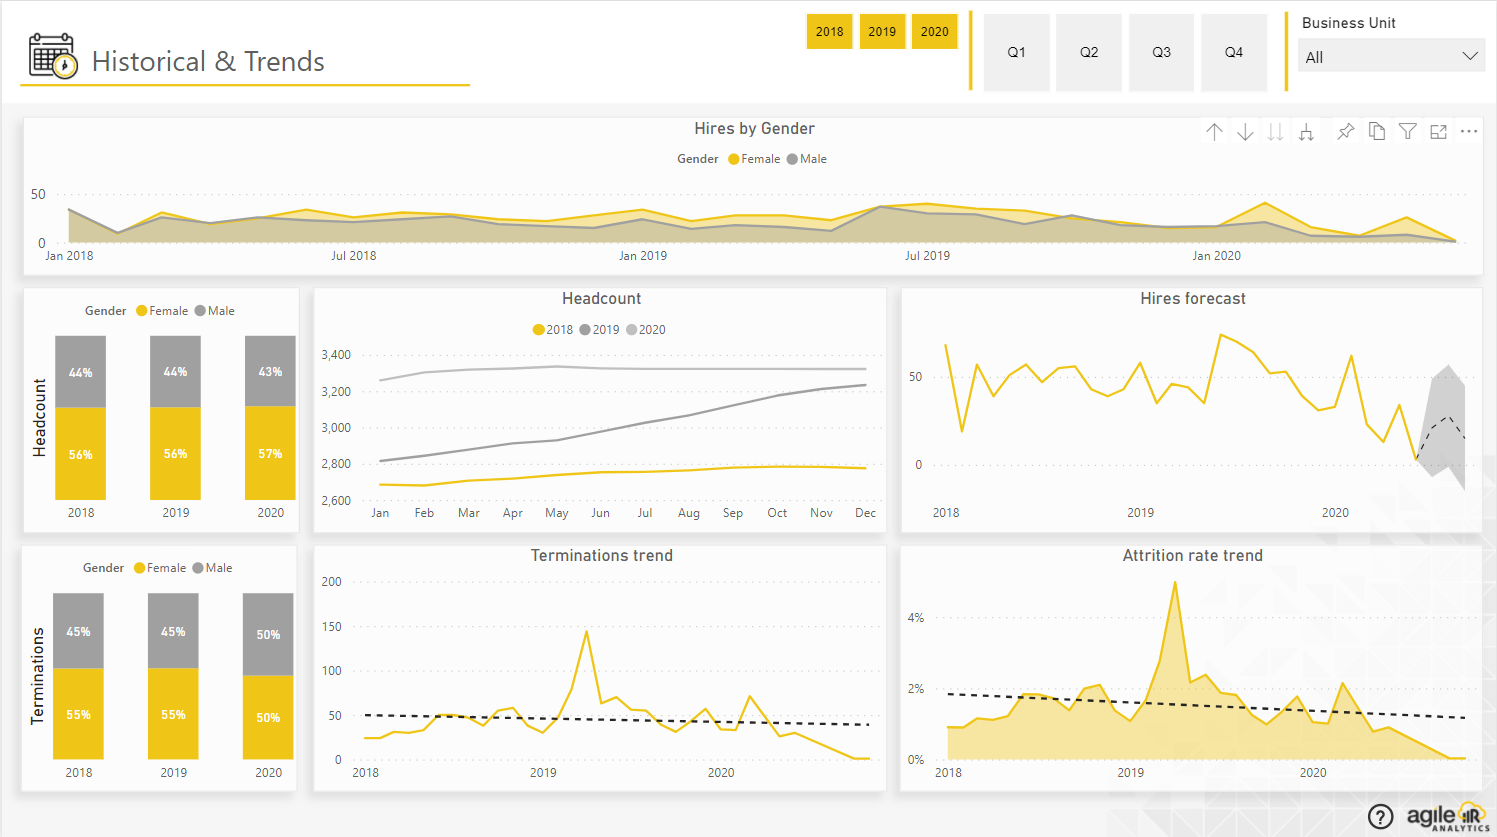 Agile HR Analytics - Historical and Trends